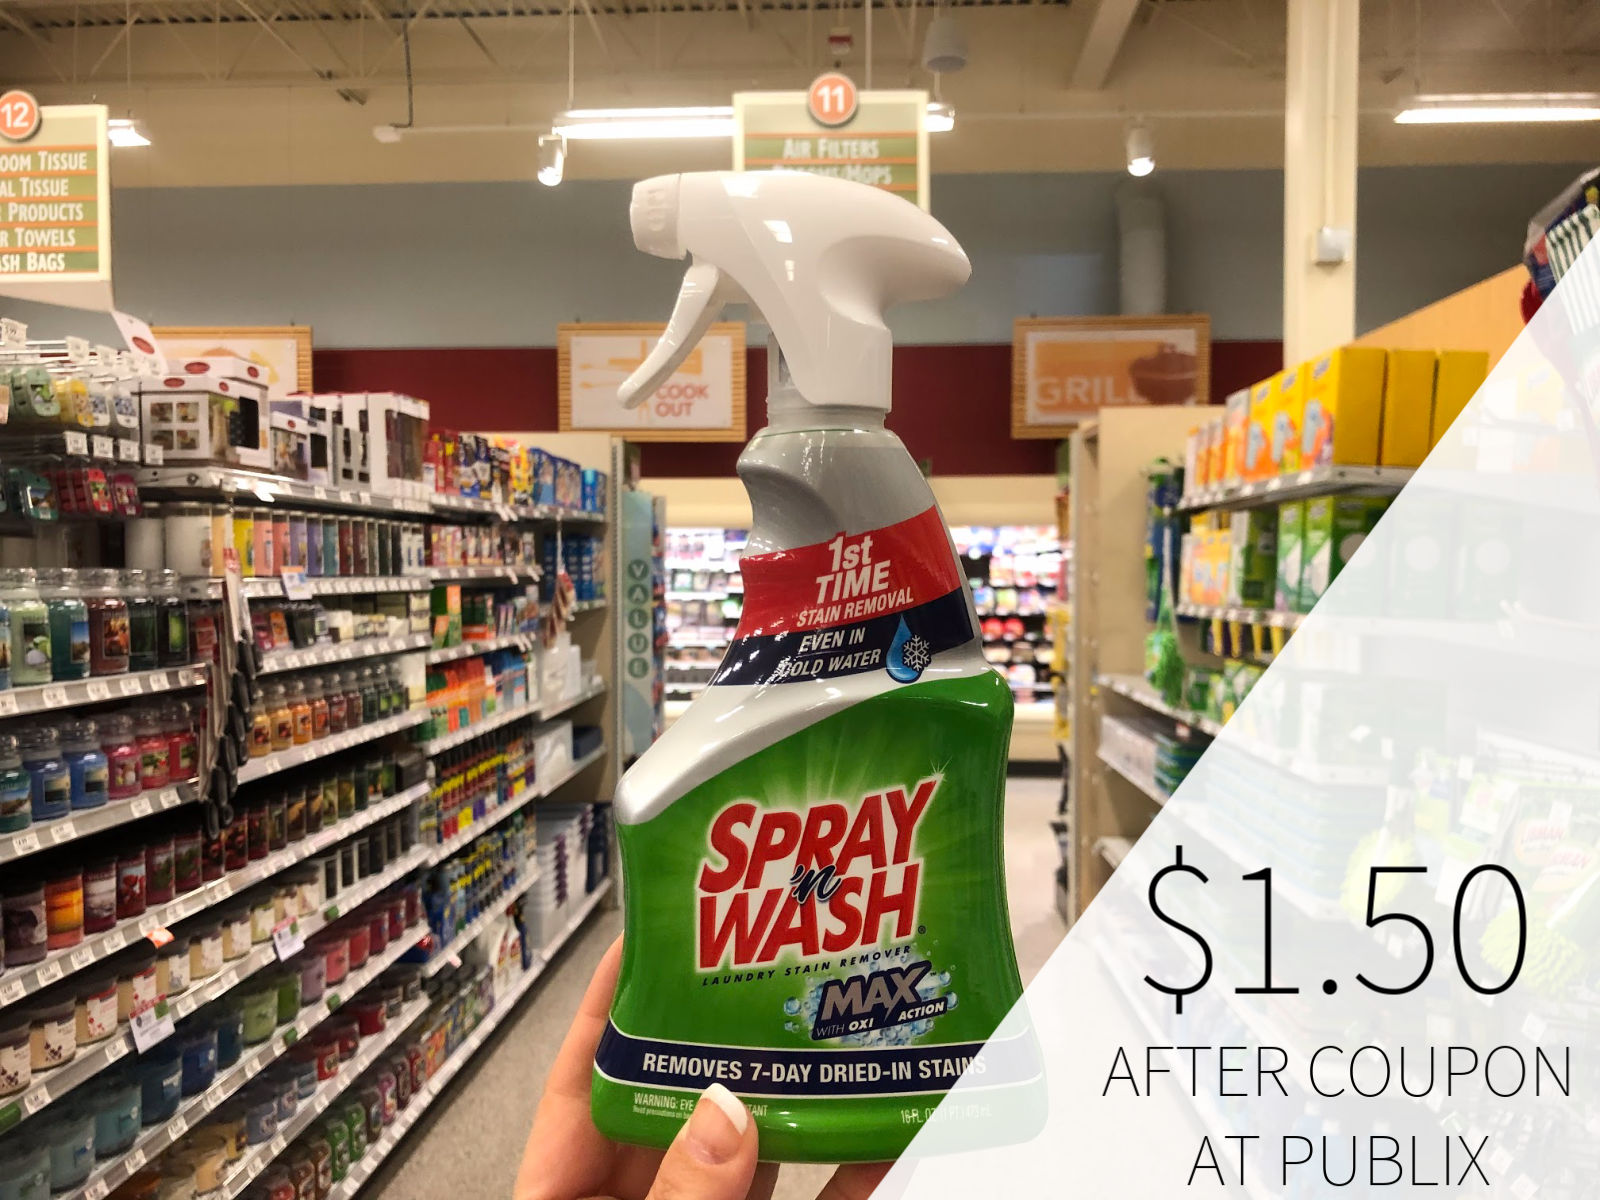 Spray 'n Wash Laundry Stain Remover Only $1.50 At Publix on I Heart Publix 3